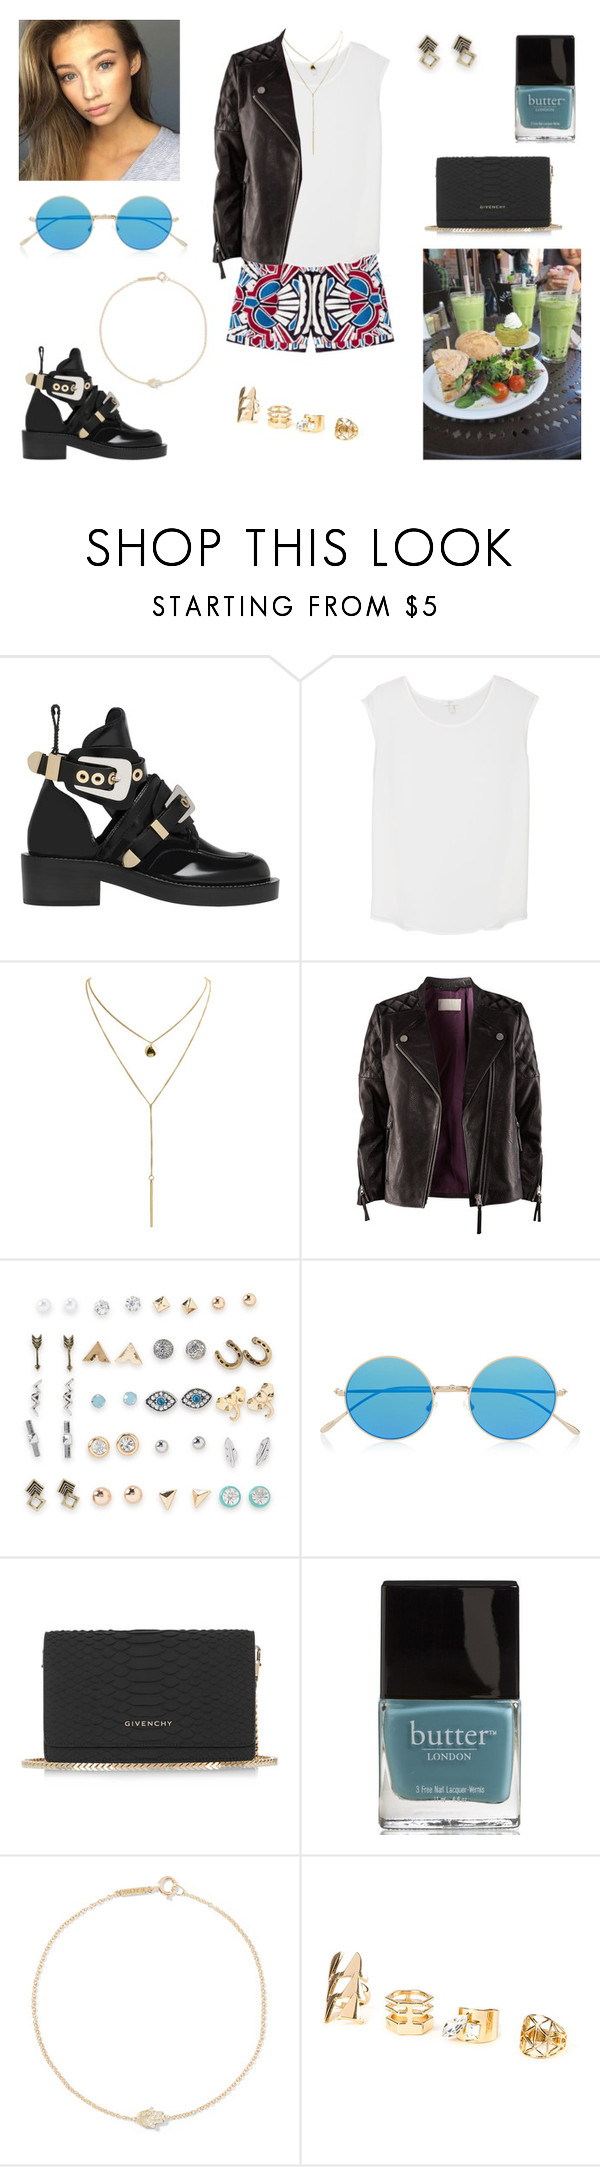 """""""13/11/16"""" by milena-serranista ❤ liked on Polyvore featuring Balenciaga, Joie, H&M, Aéropostale, Prada, Illesteva, Givenchy, Butter London and Jennifer Meyer Jewelry"""